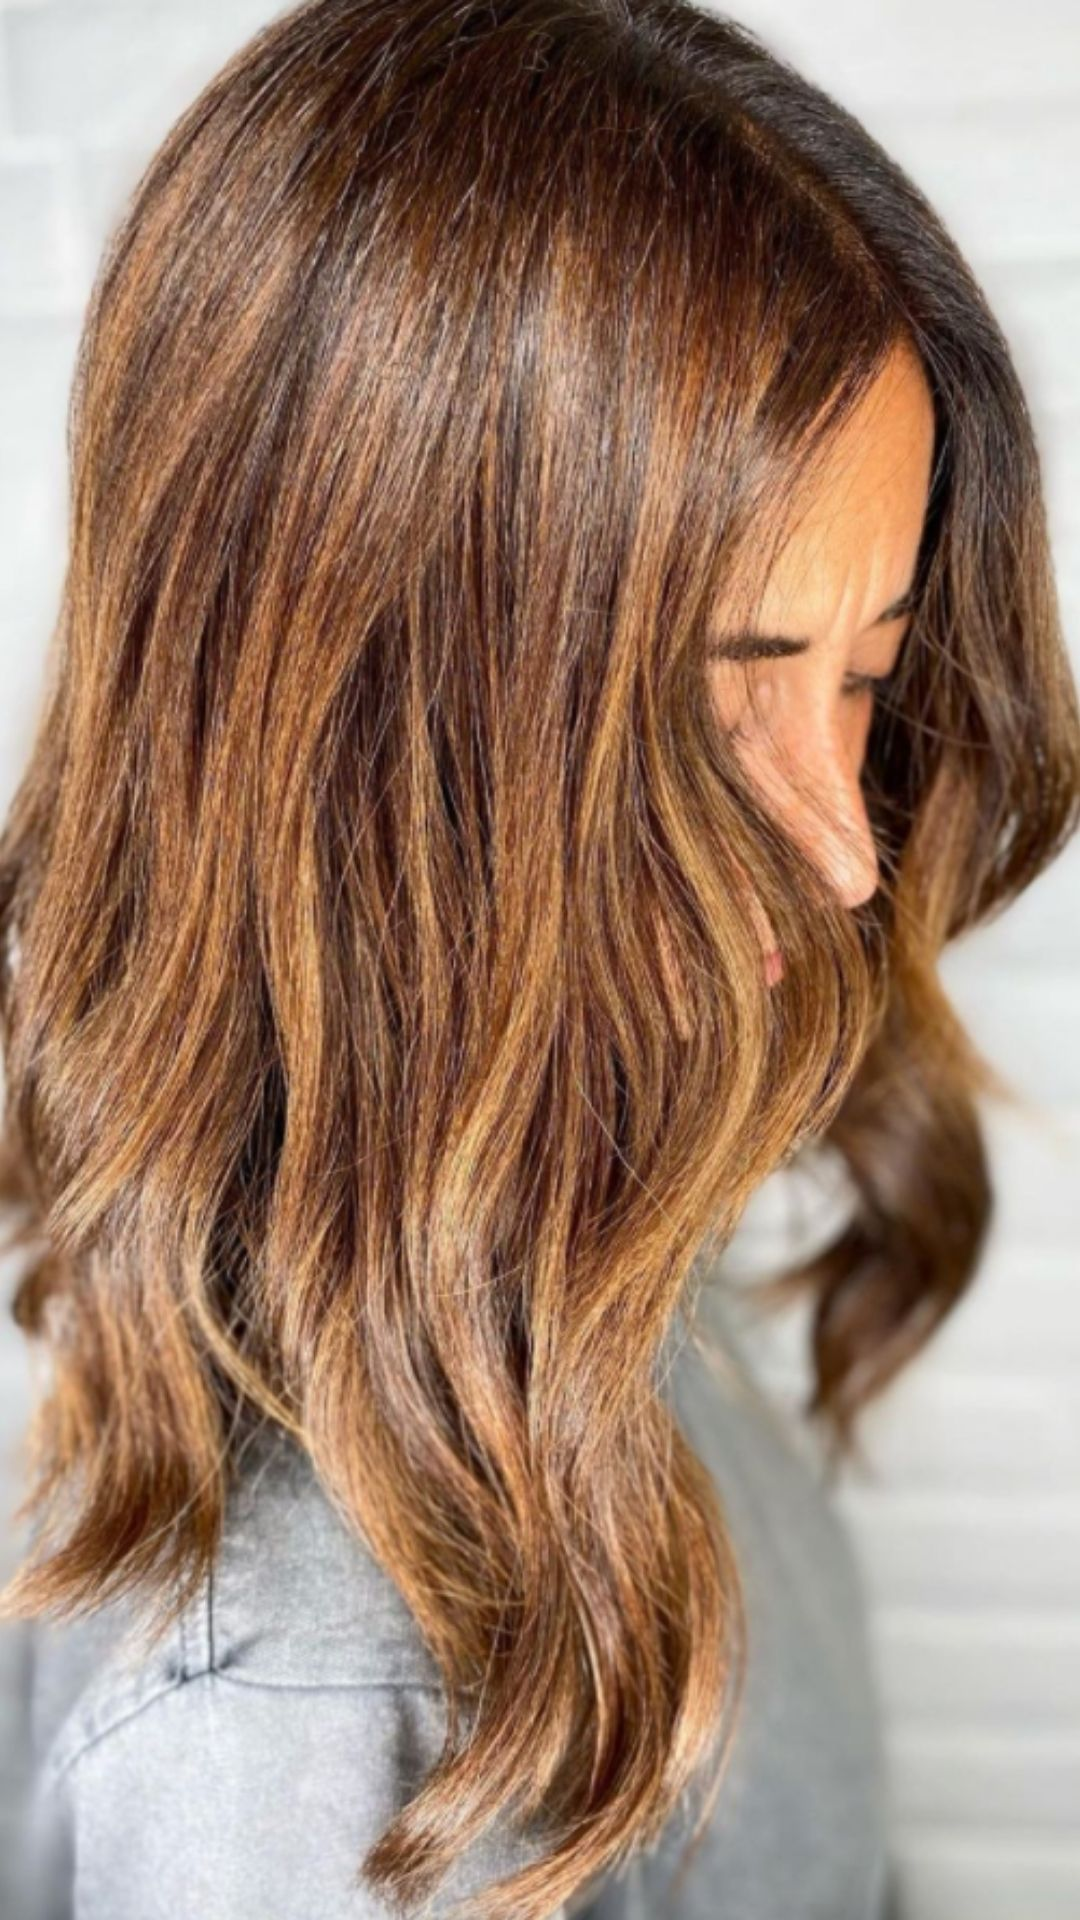 37 Cute hairstyles for medium hair to Fuel Your Imagination